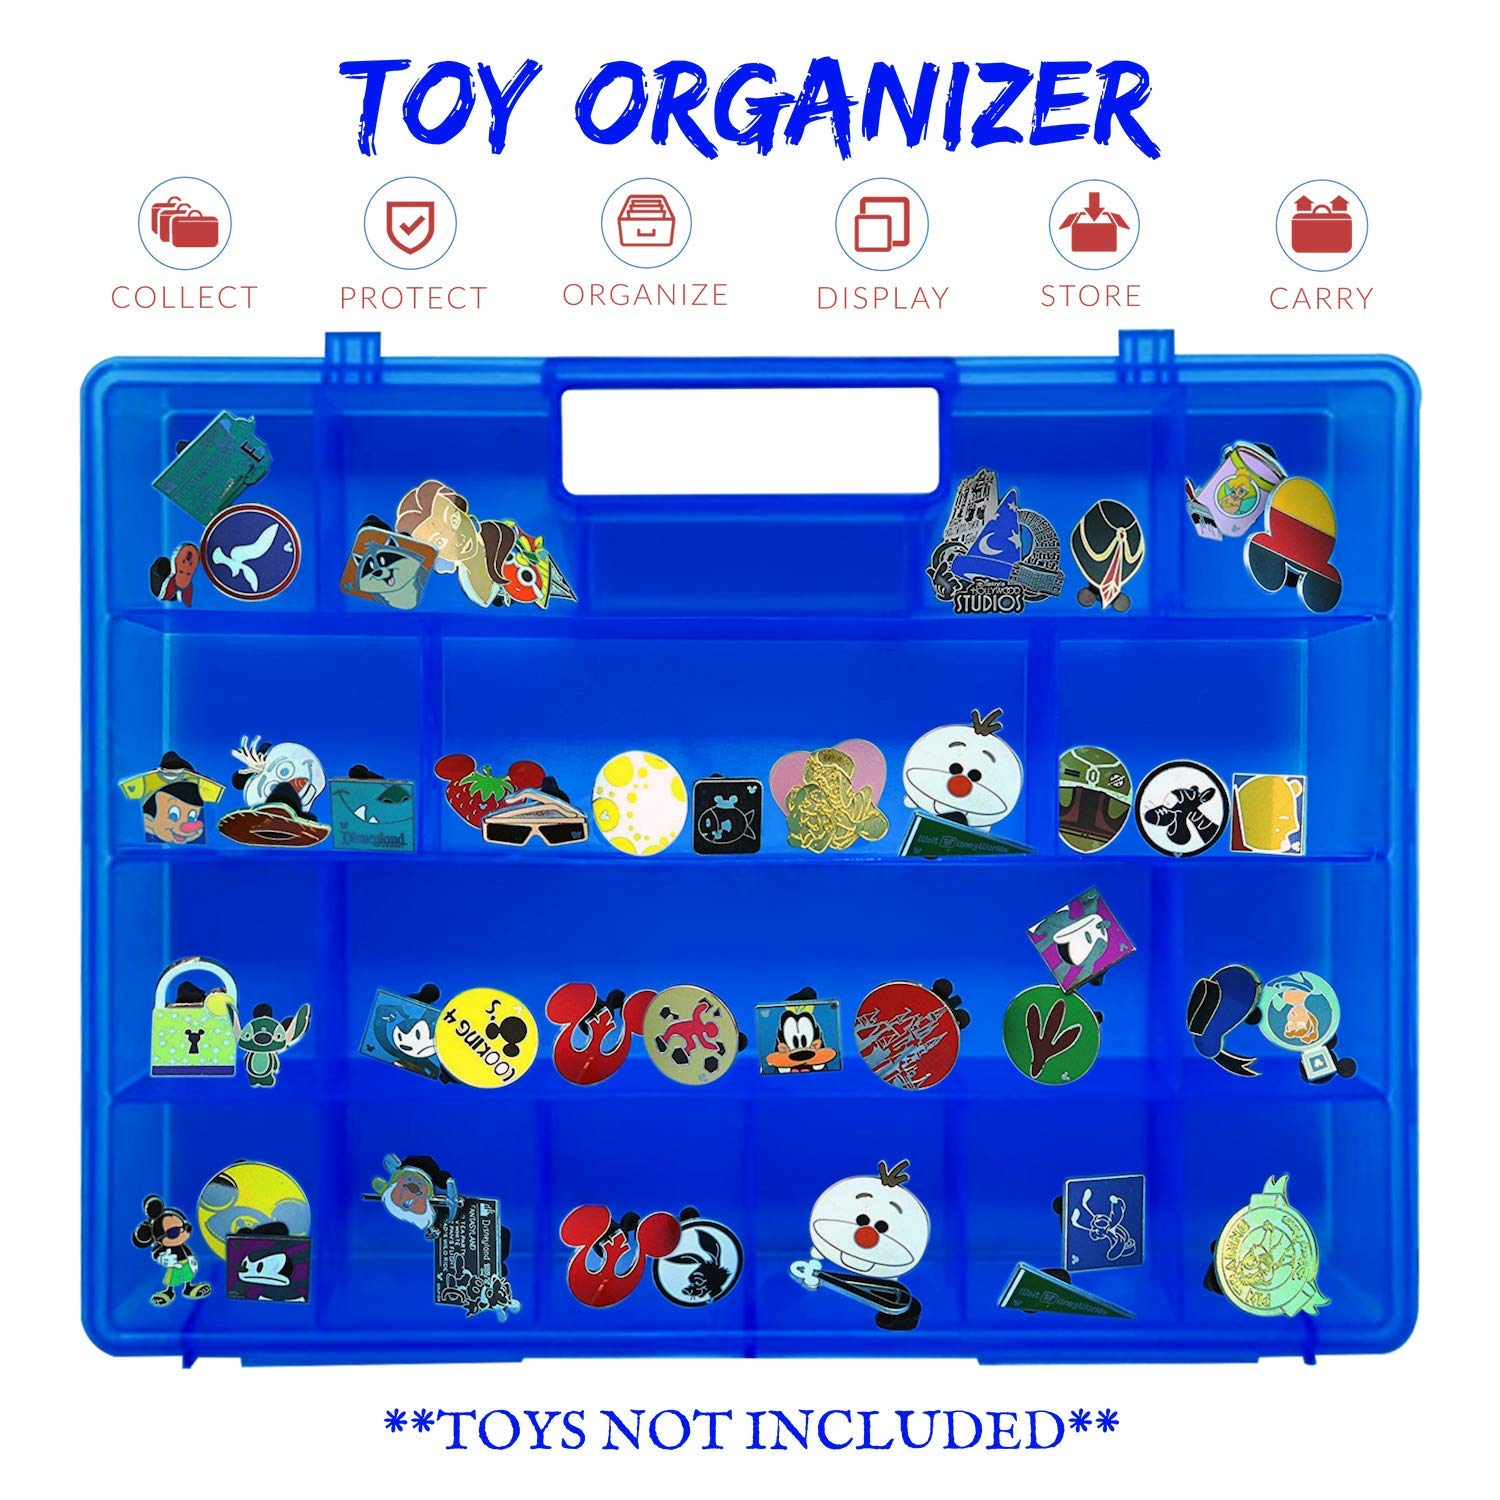 Carrying /& Storage Solution Organizer not Created by Disney Life Made Better Accessories Made by LMB Compatible with Disney Pins Blue Collectible Toy Protector Storage Case